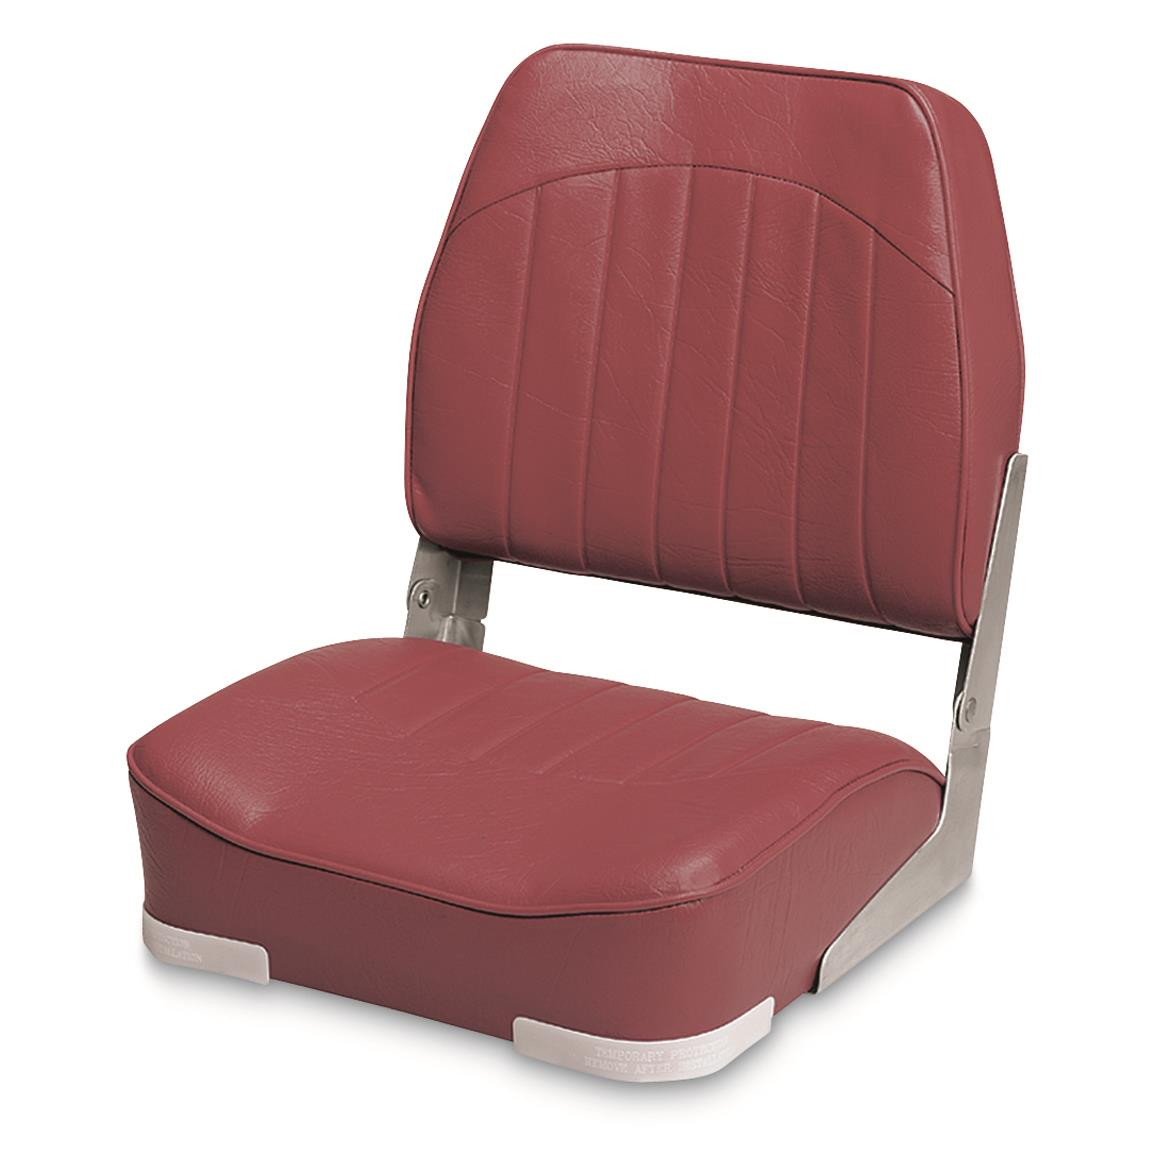 Wise Low - back Economy Fishing Boat Seat, Red